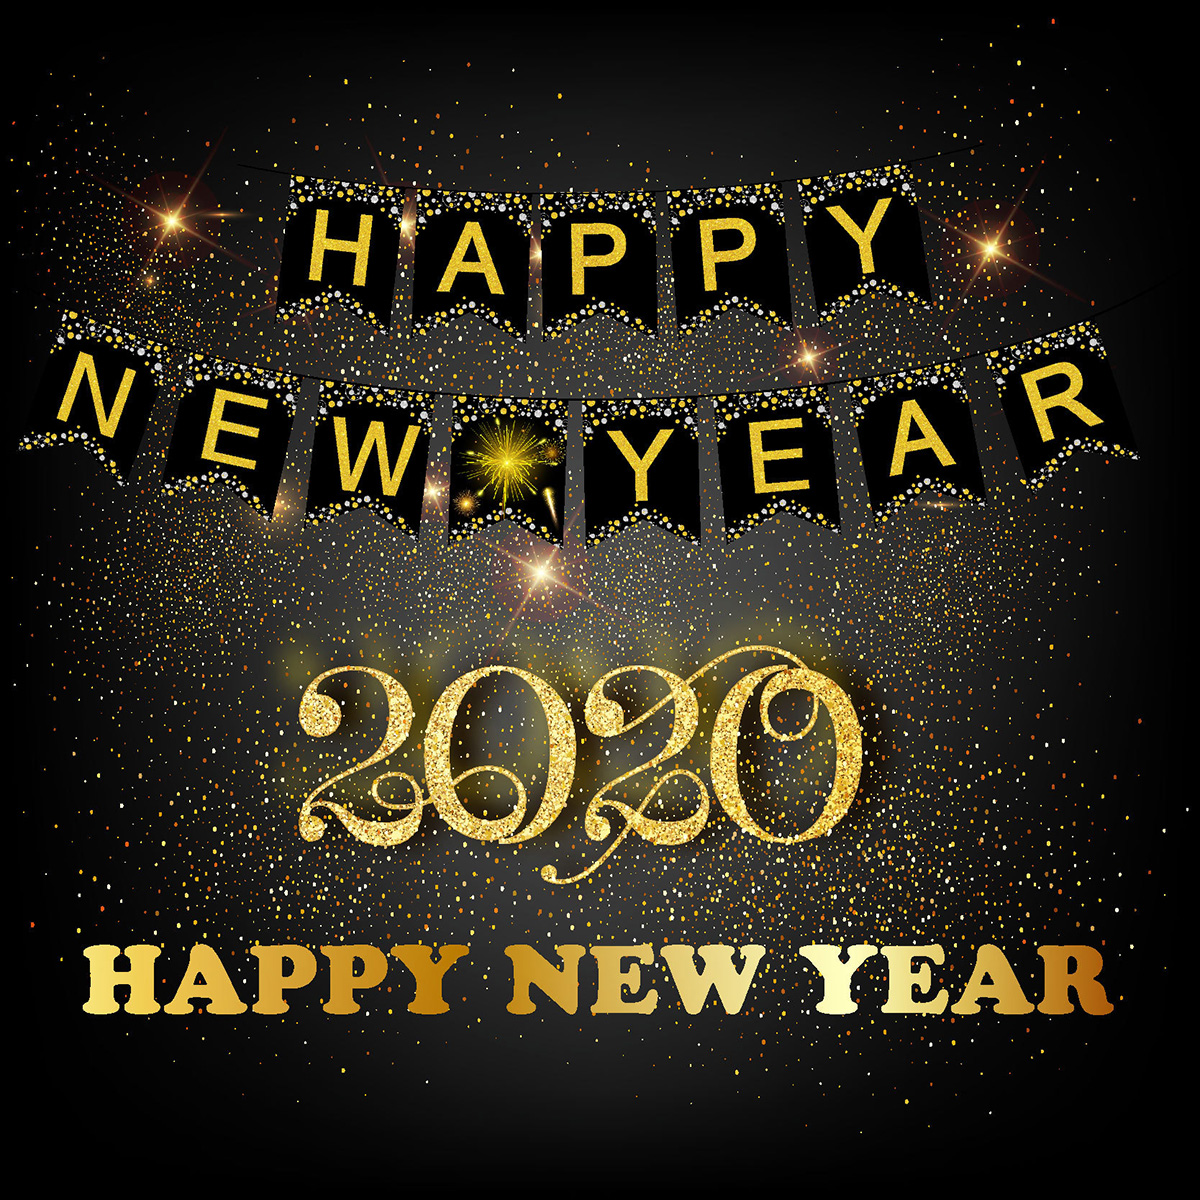 2019 New Year's Eve Party Banner Home Party Decoration New Year Theme Party Festival Vibe Happy New Year Banner